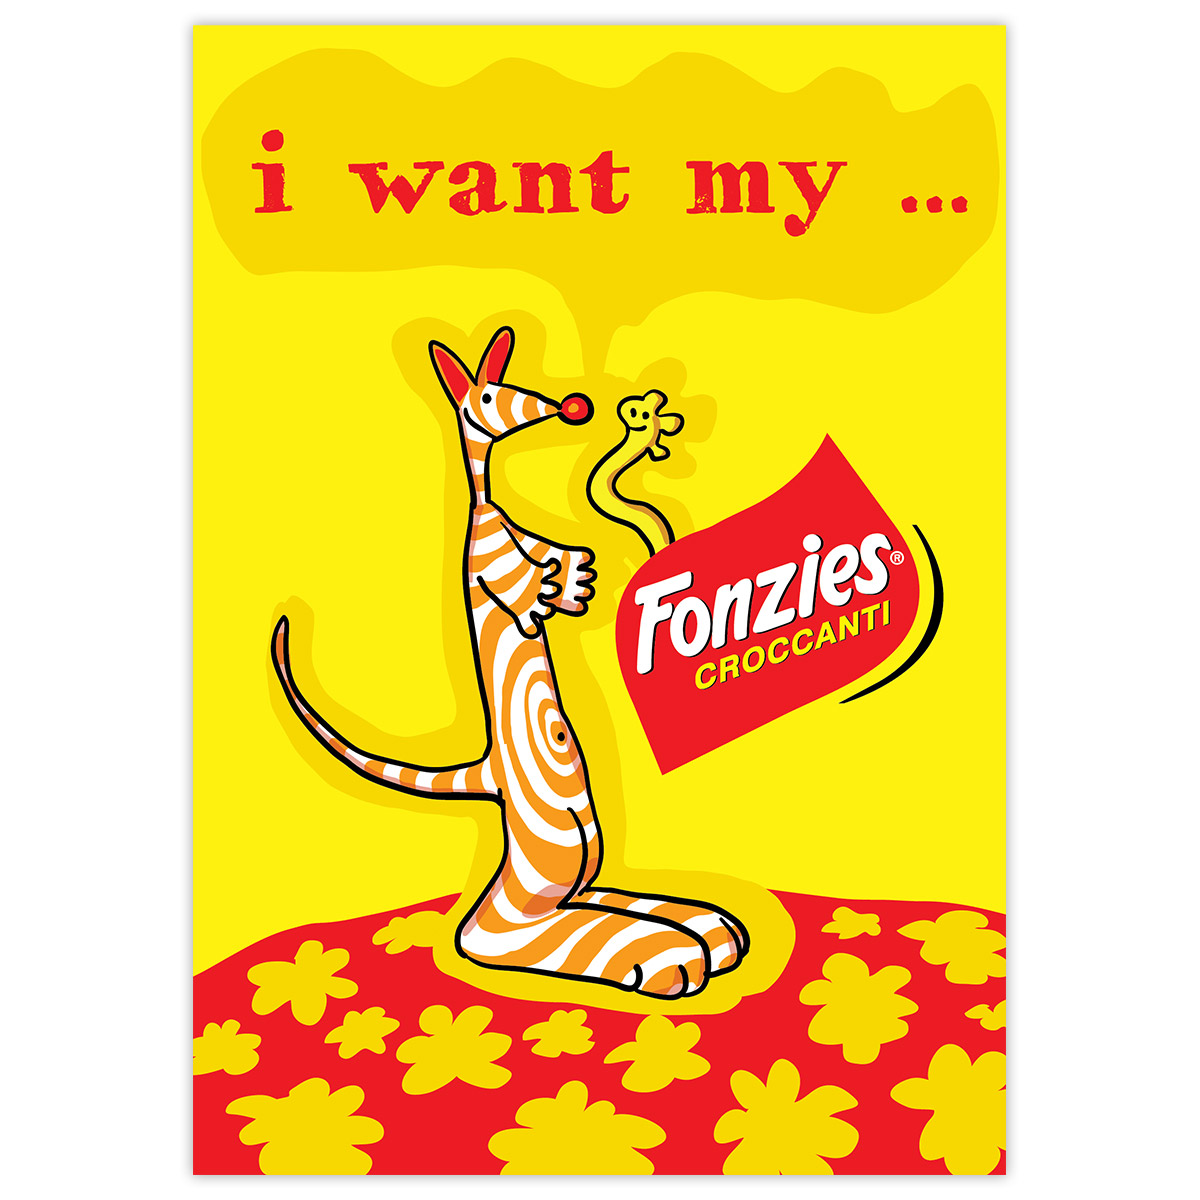 Fonzies – contest